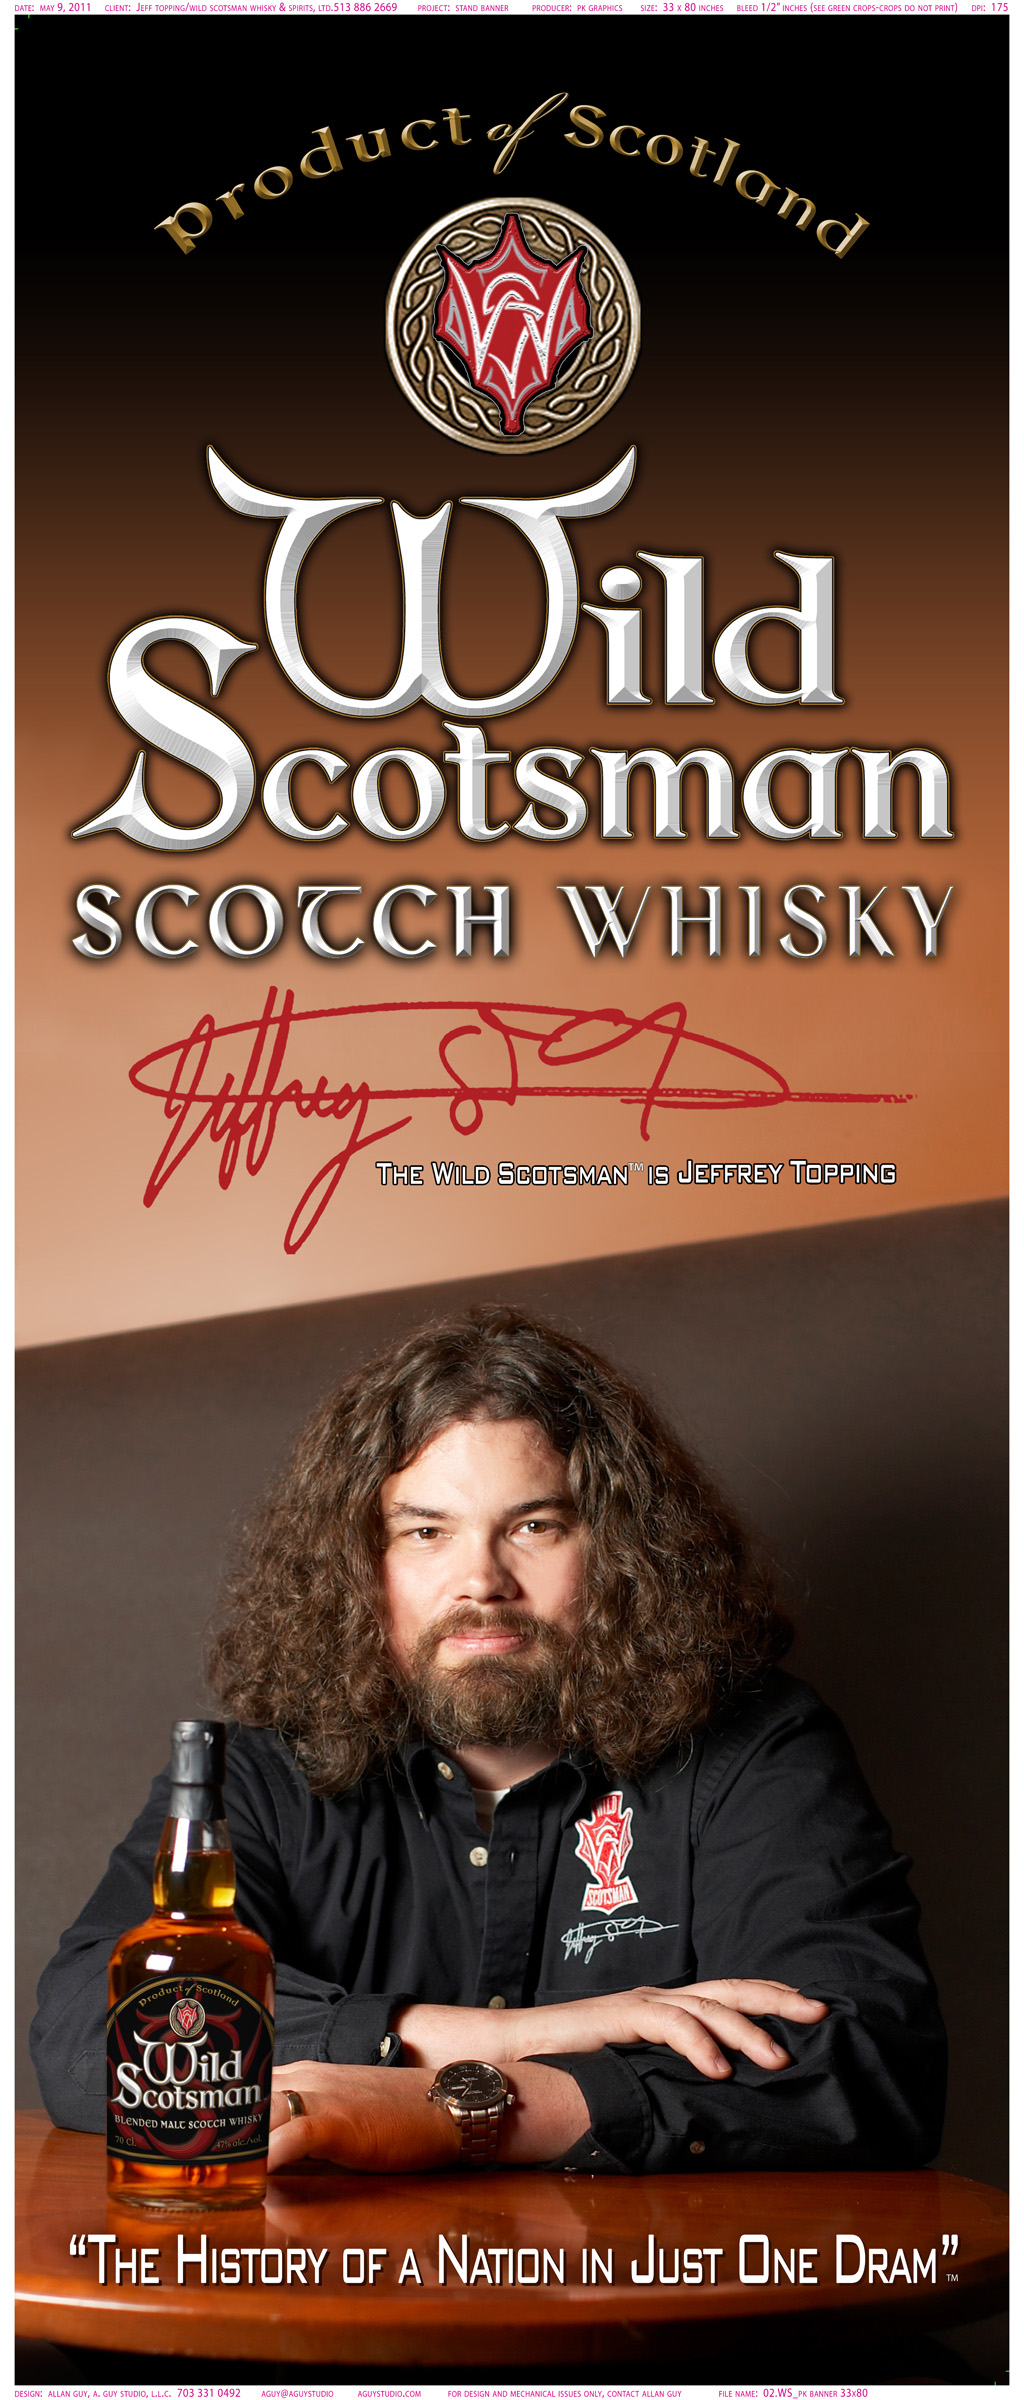 Wild Scotsman Whisky